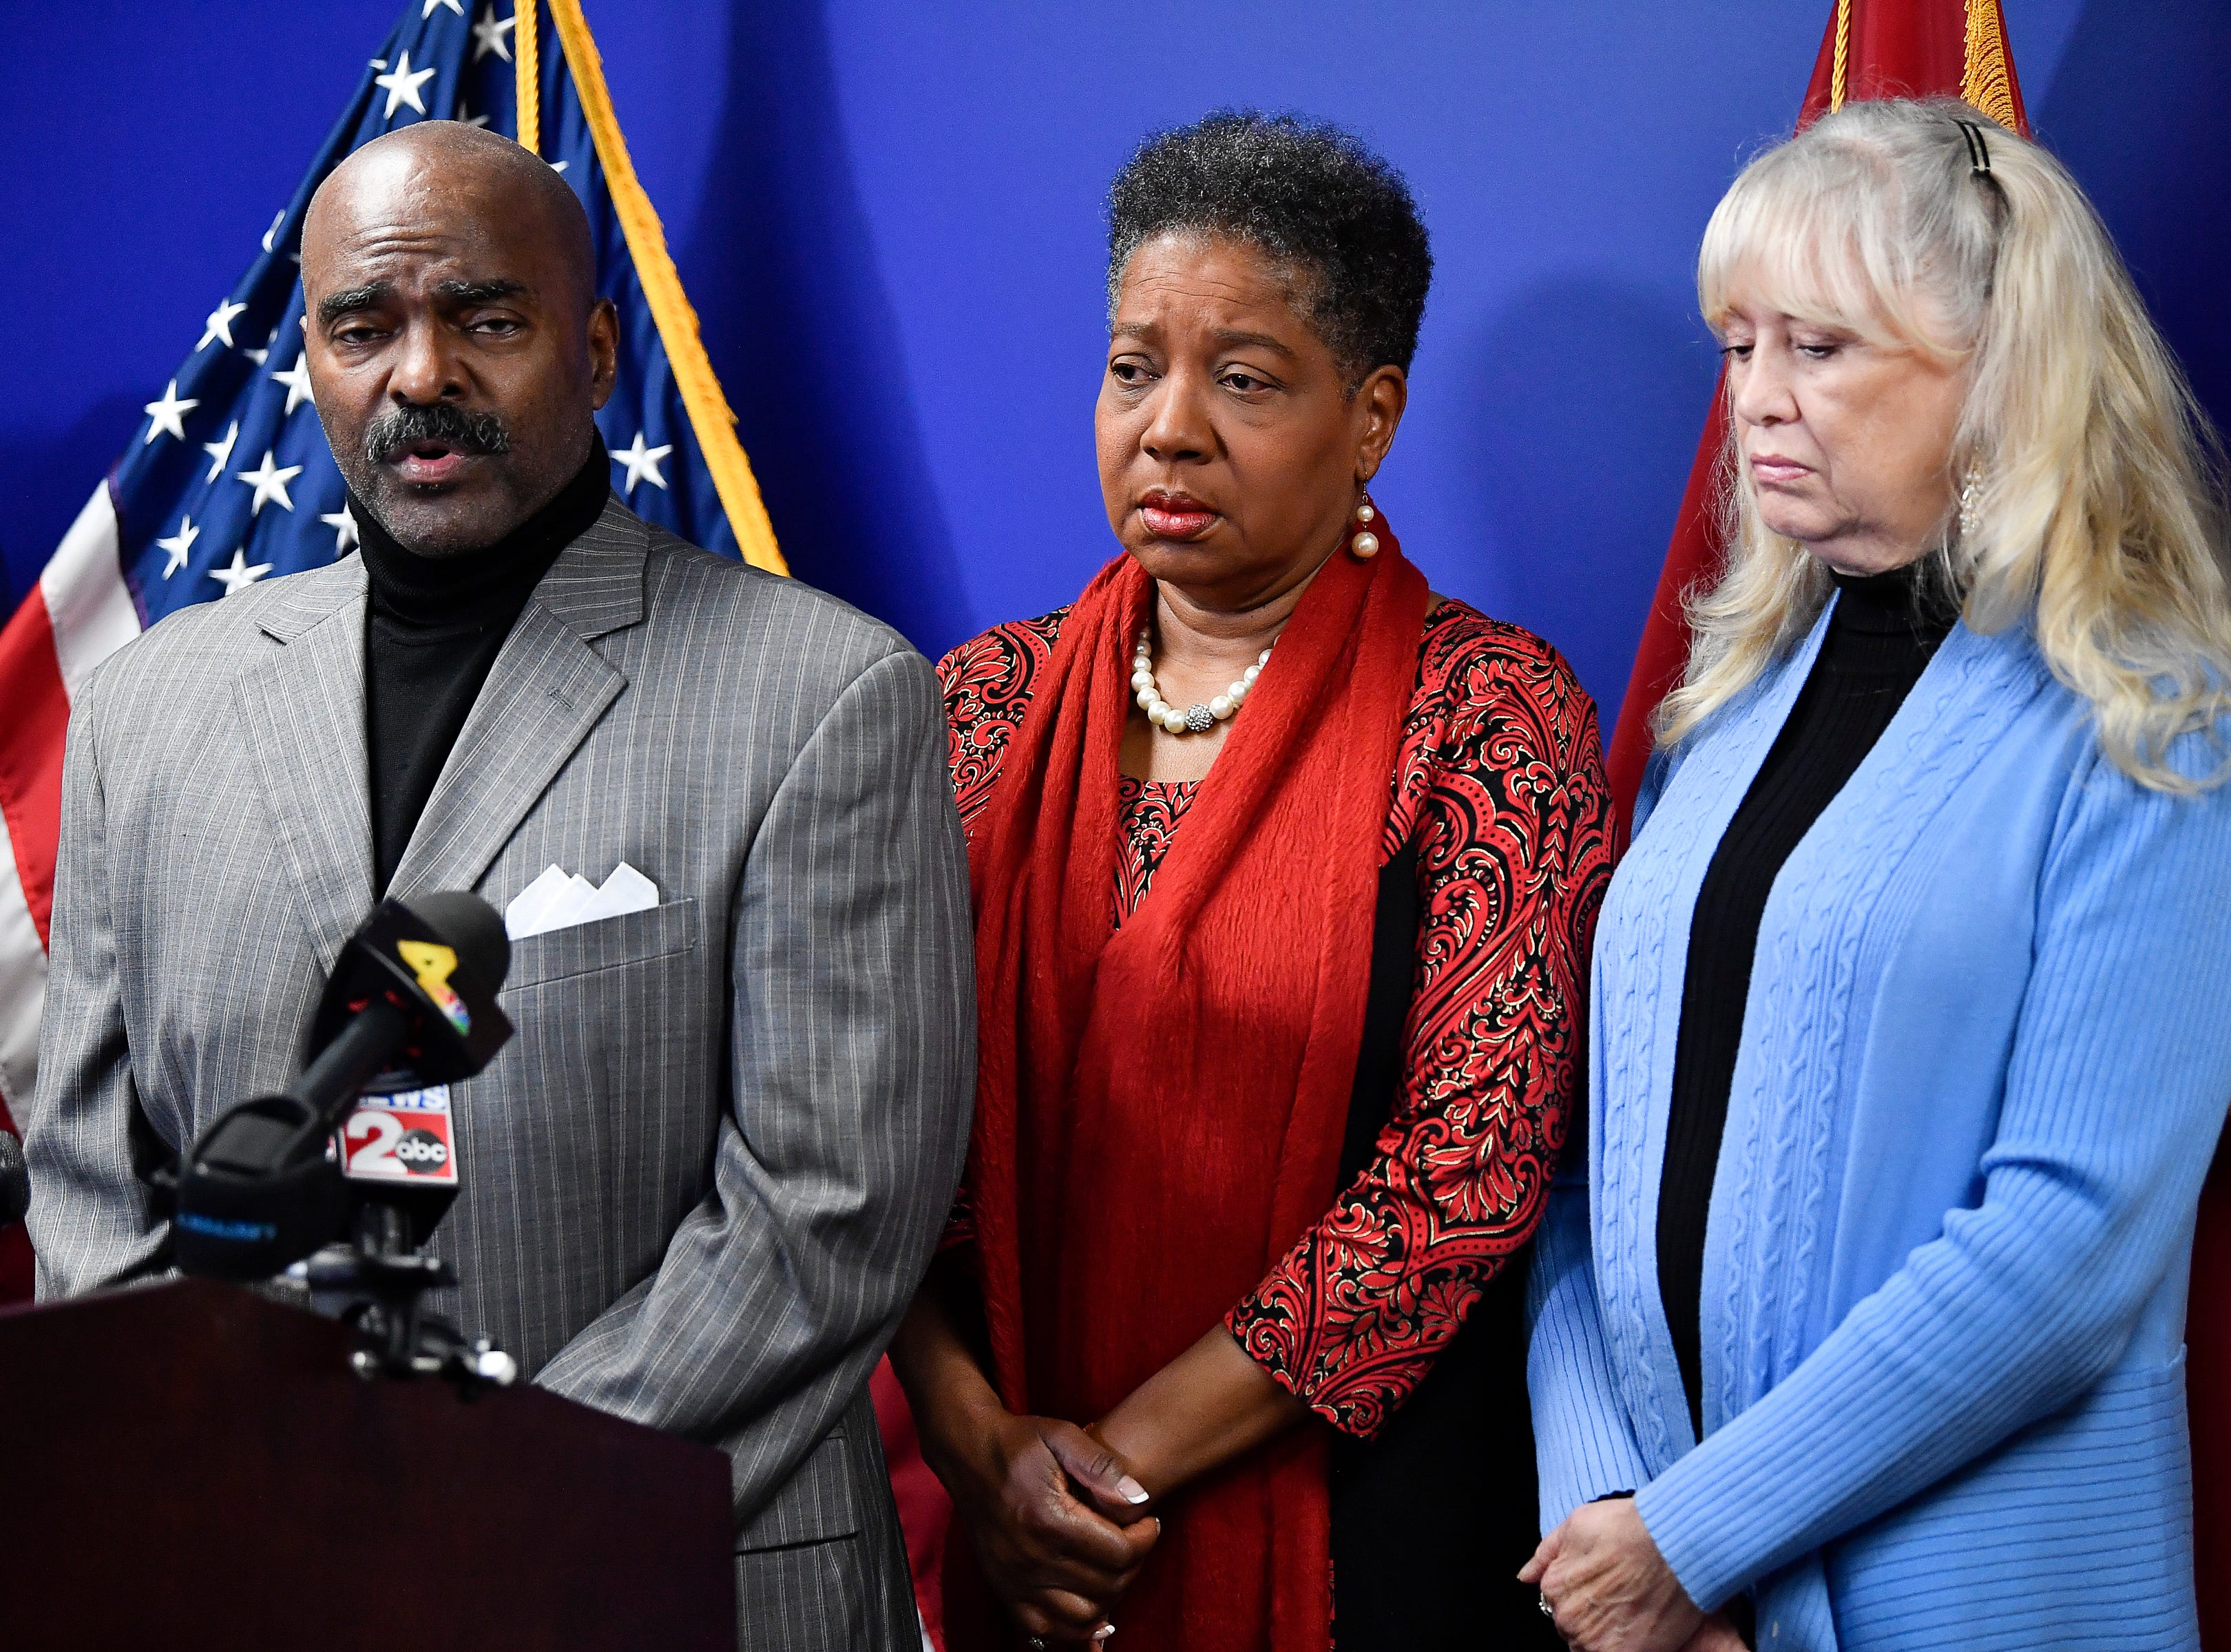 Tenn. Rep. G.A. Hardaway with State Sen. elect Brenda Gilmore and State Rep. Sherry Jones addresses the media during a press conference asking Gov. Bill Haslam to grant Cyntoia Brown clemency after being convicted of murder when she was 16-years-old in 2004 at the Cordell Hull Building Thursday, Jan. 3, 2019, in Nashville, Tenn.